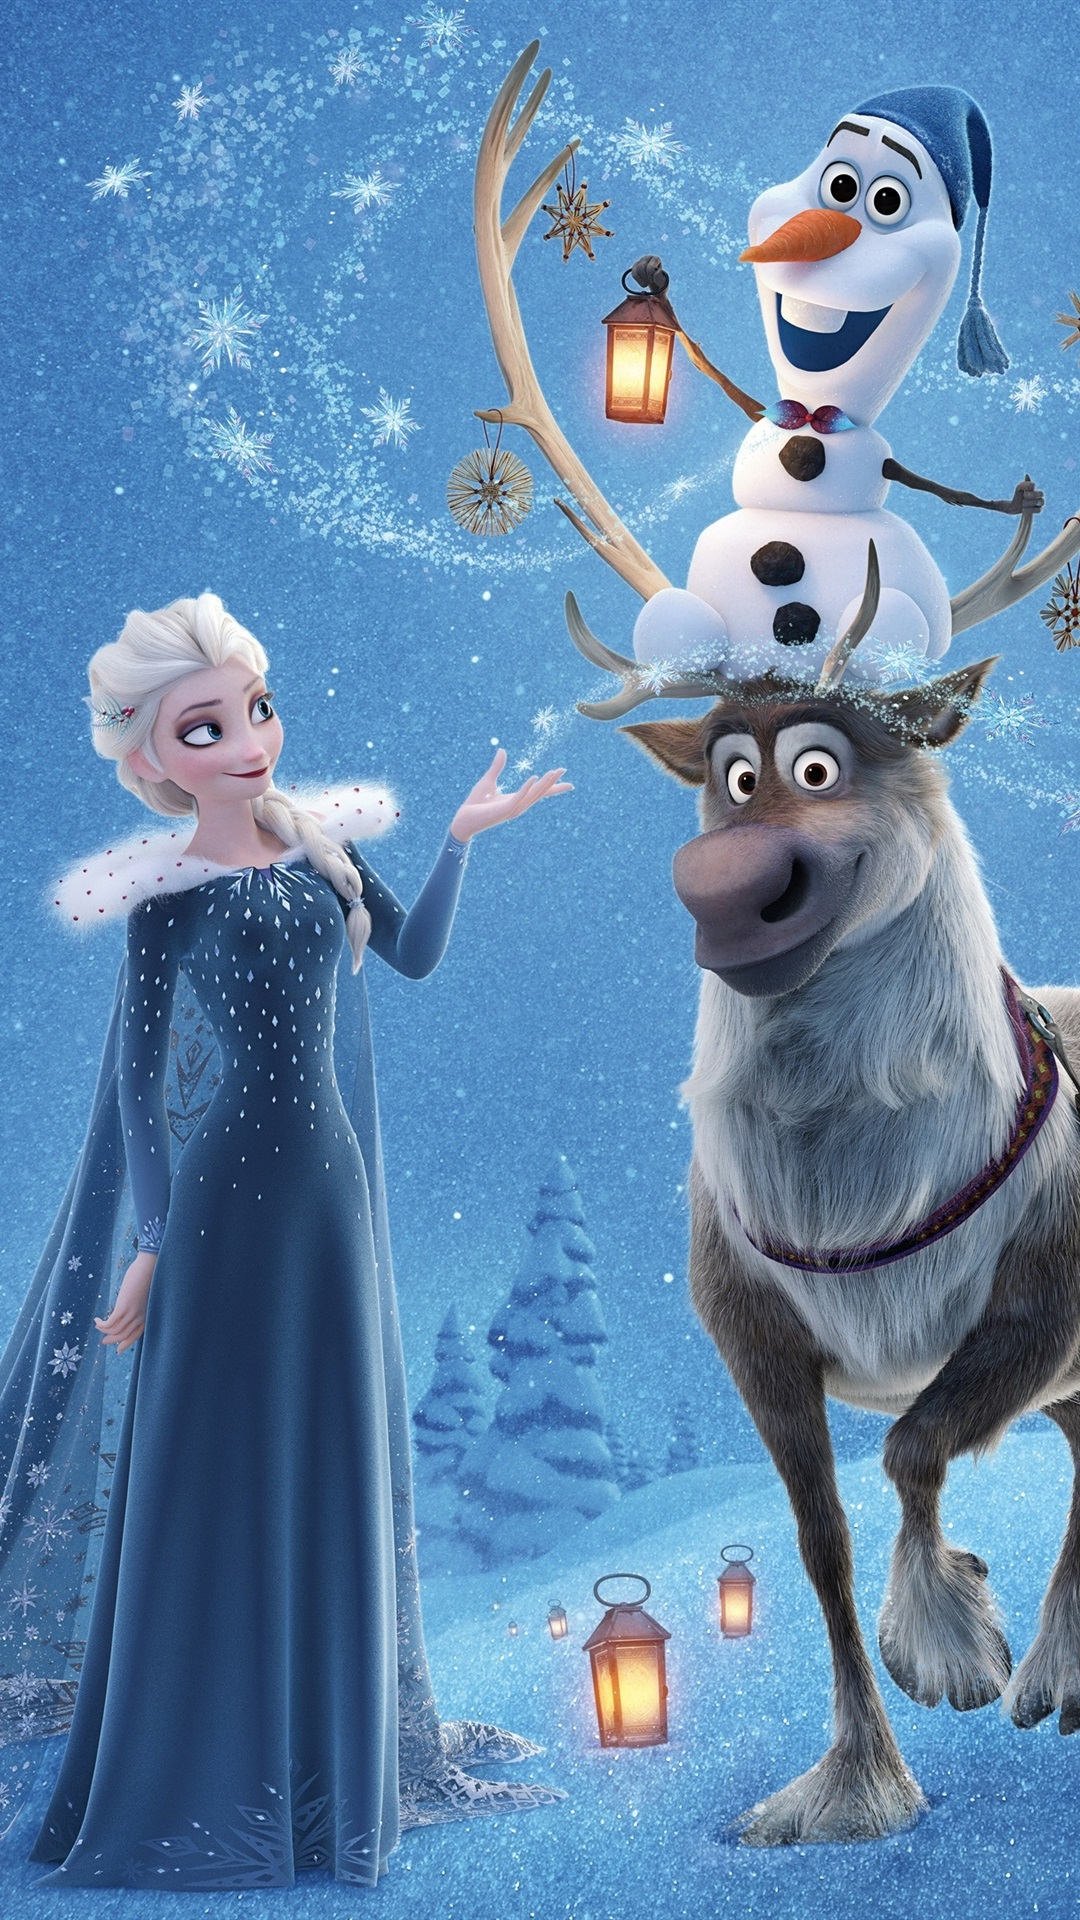 Wallpaper frozen elsa anna deer snowman disney - Frozen cartoon wallpaper ...